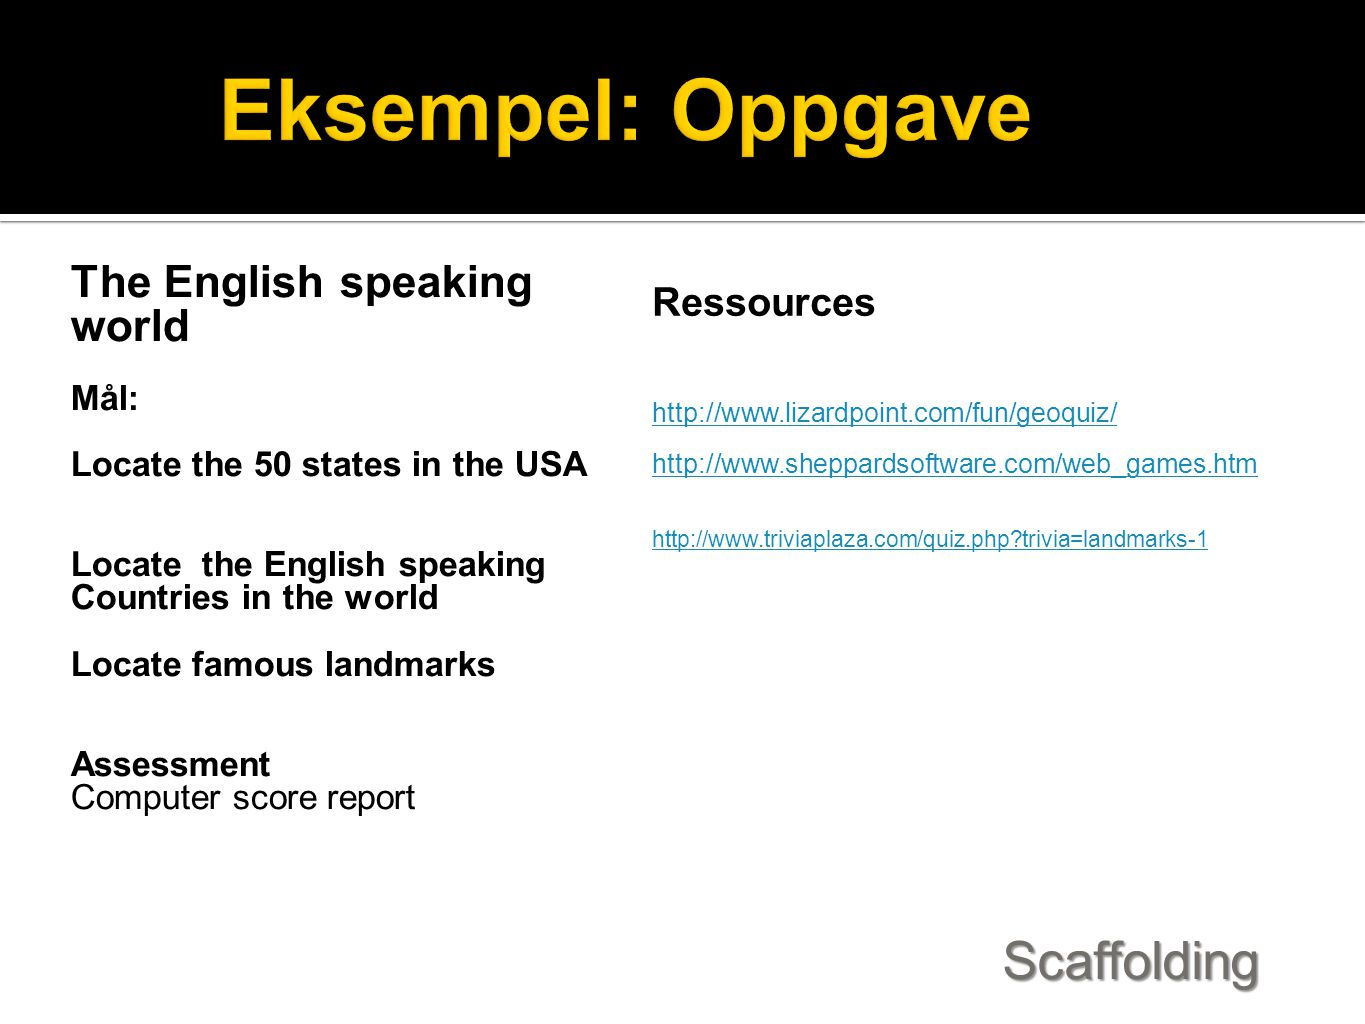 Eksempel: Oppgave Scaffolding The English speaking world Ressources